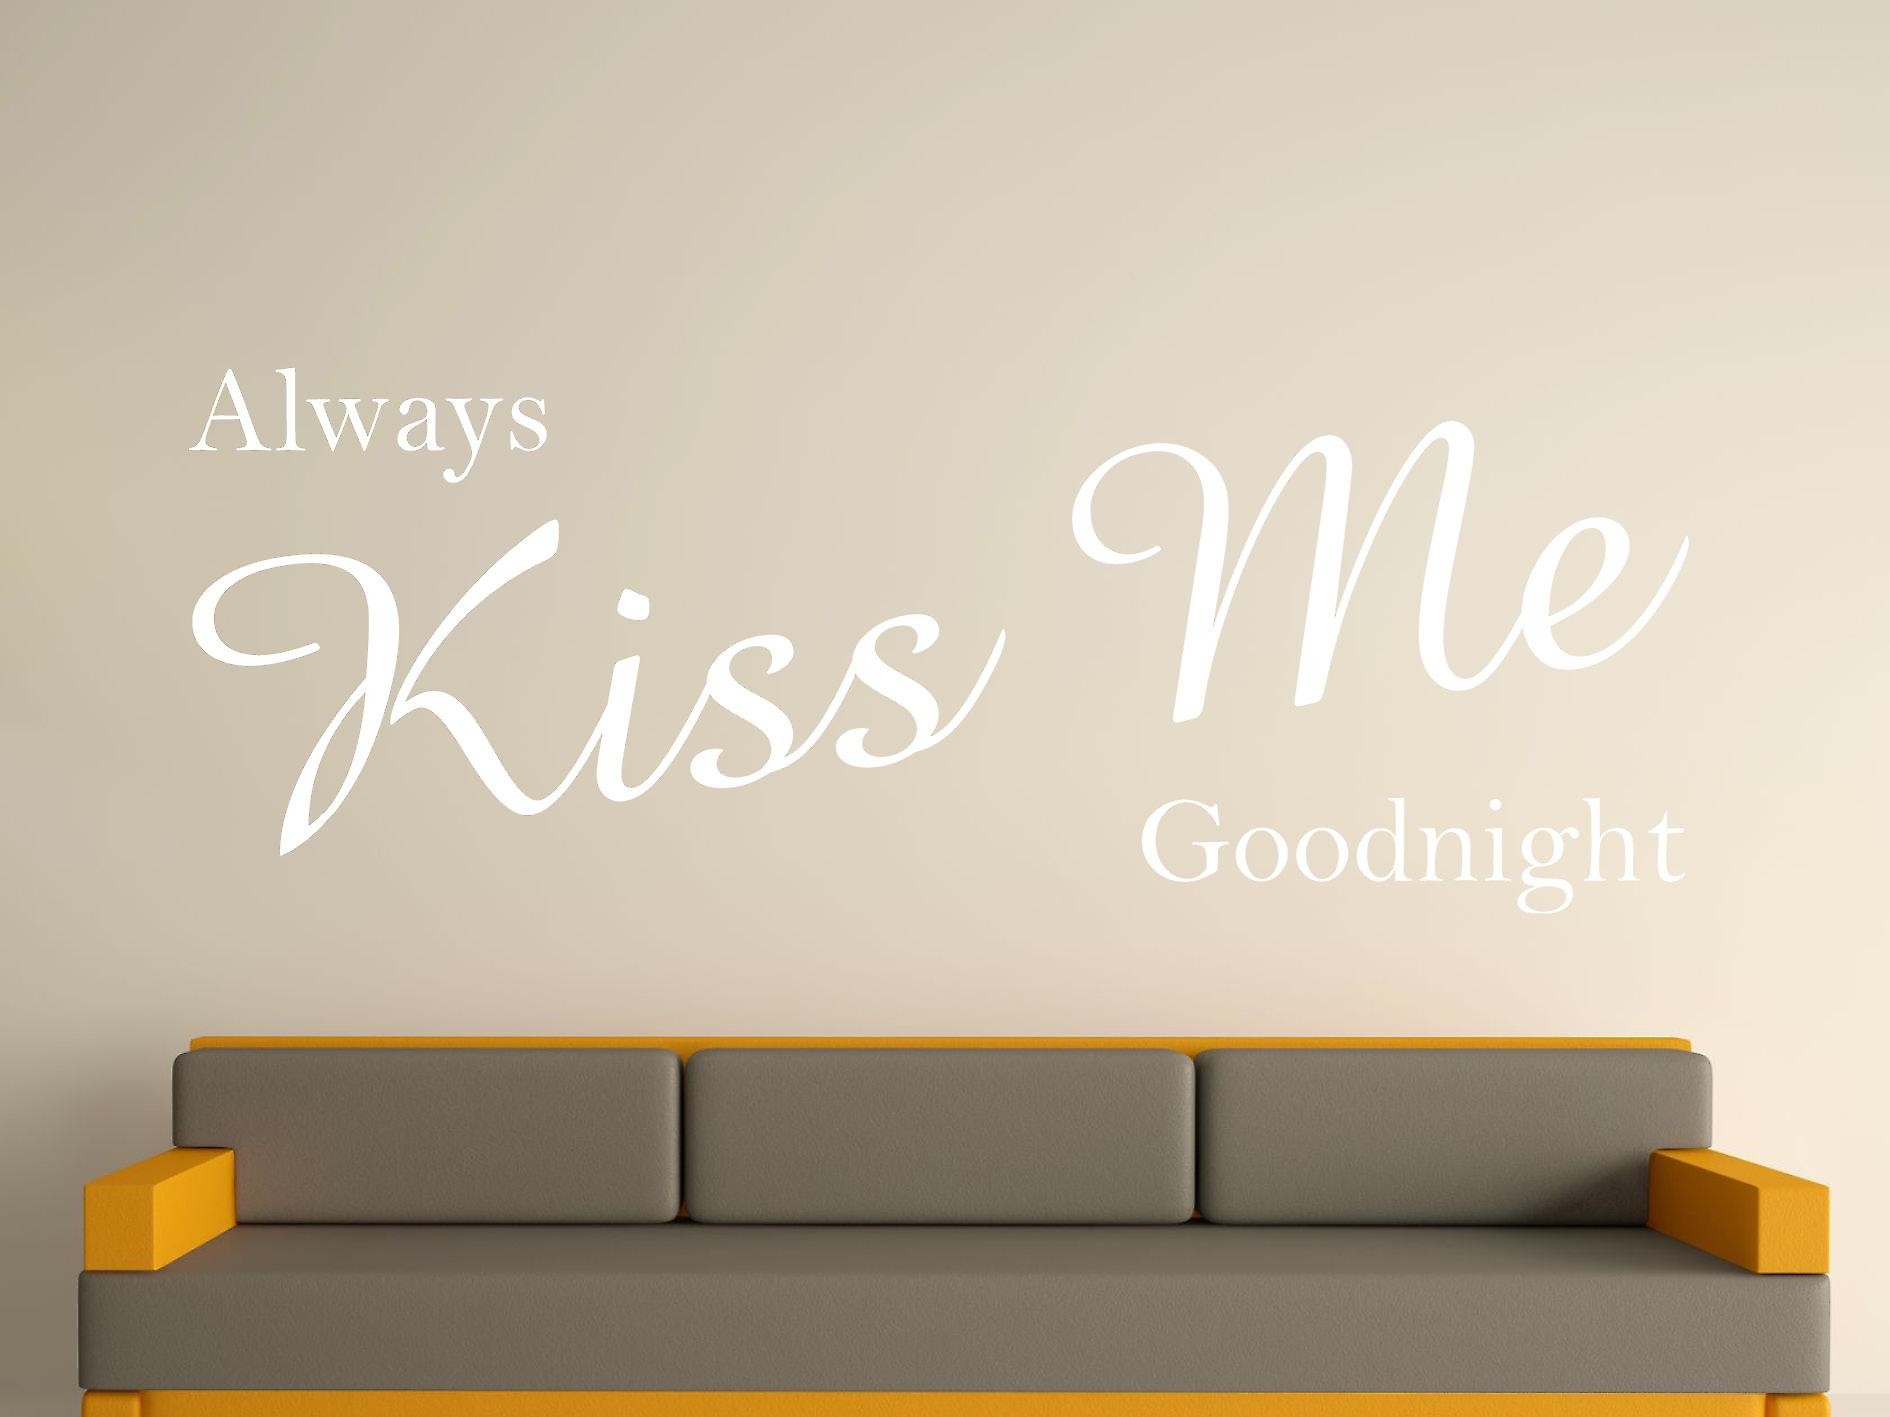 Always Kiss Me Goodnight Wall Art Sticker - White